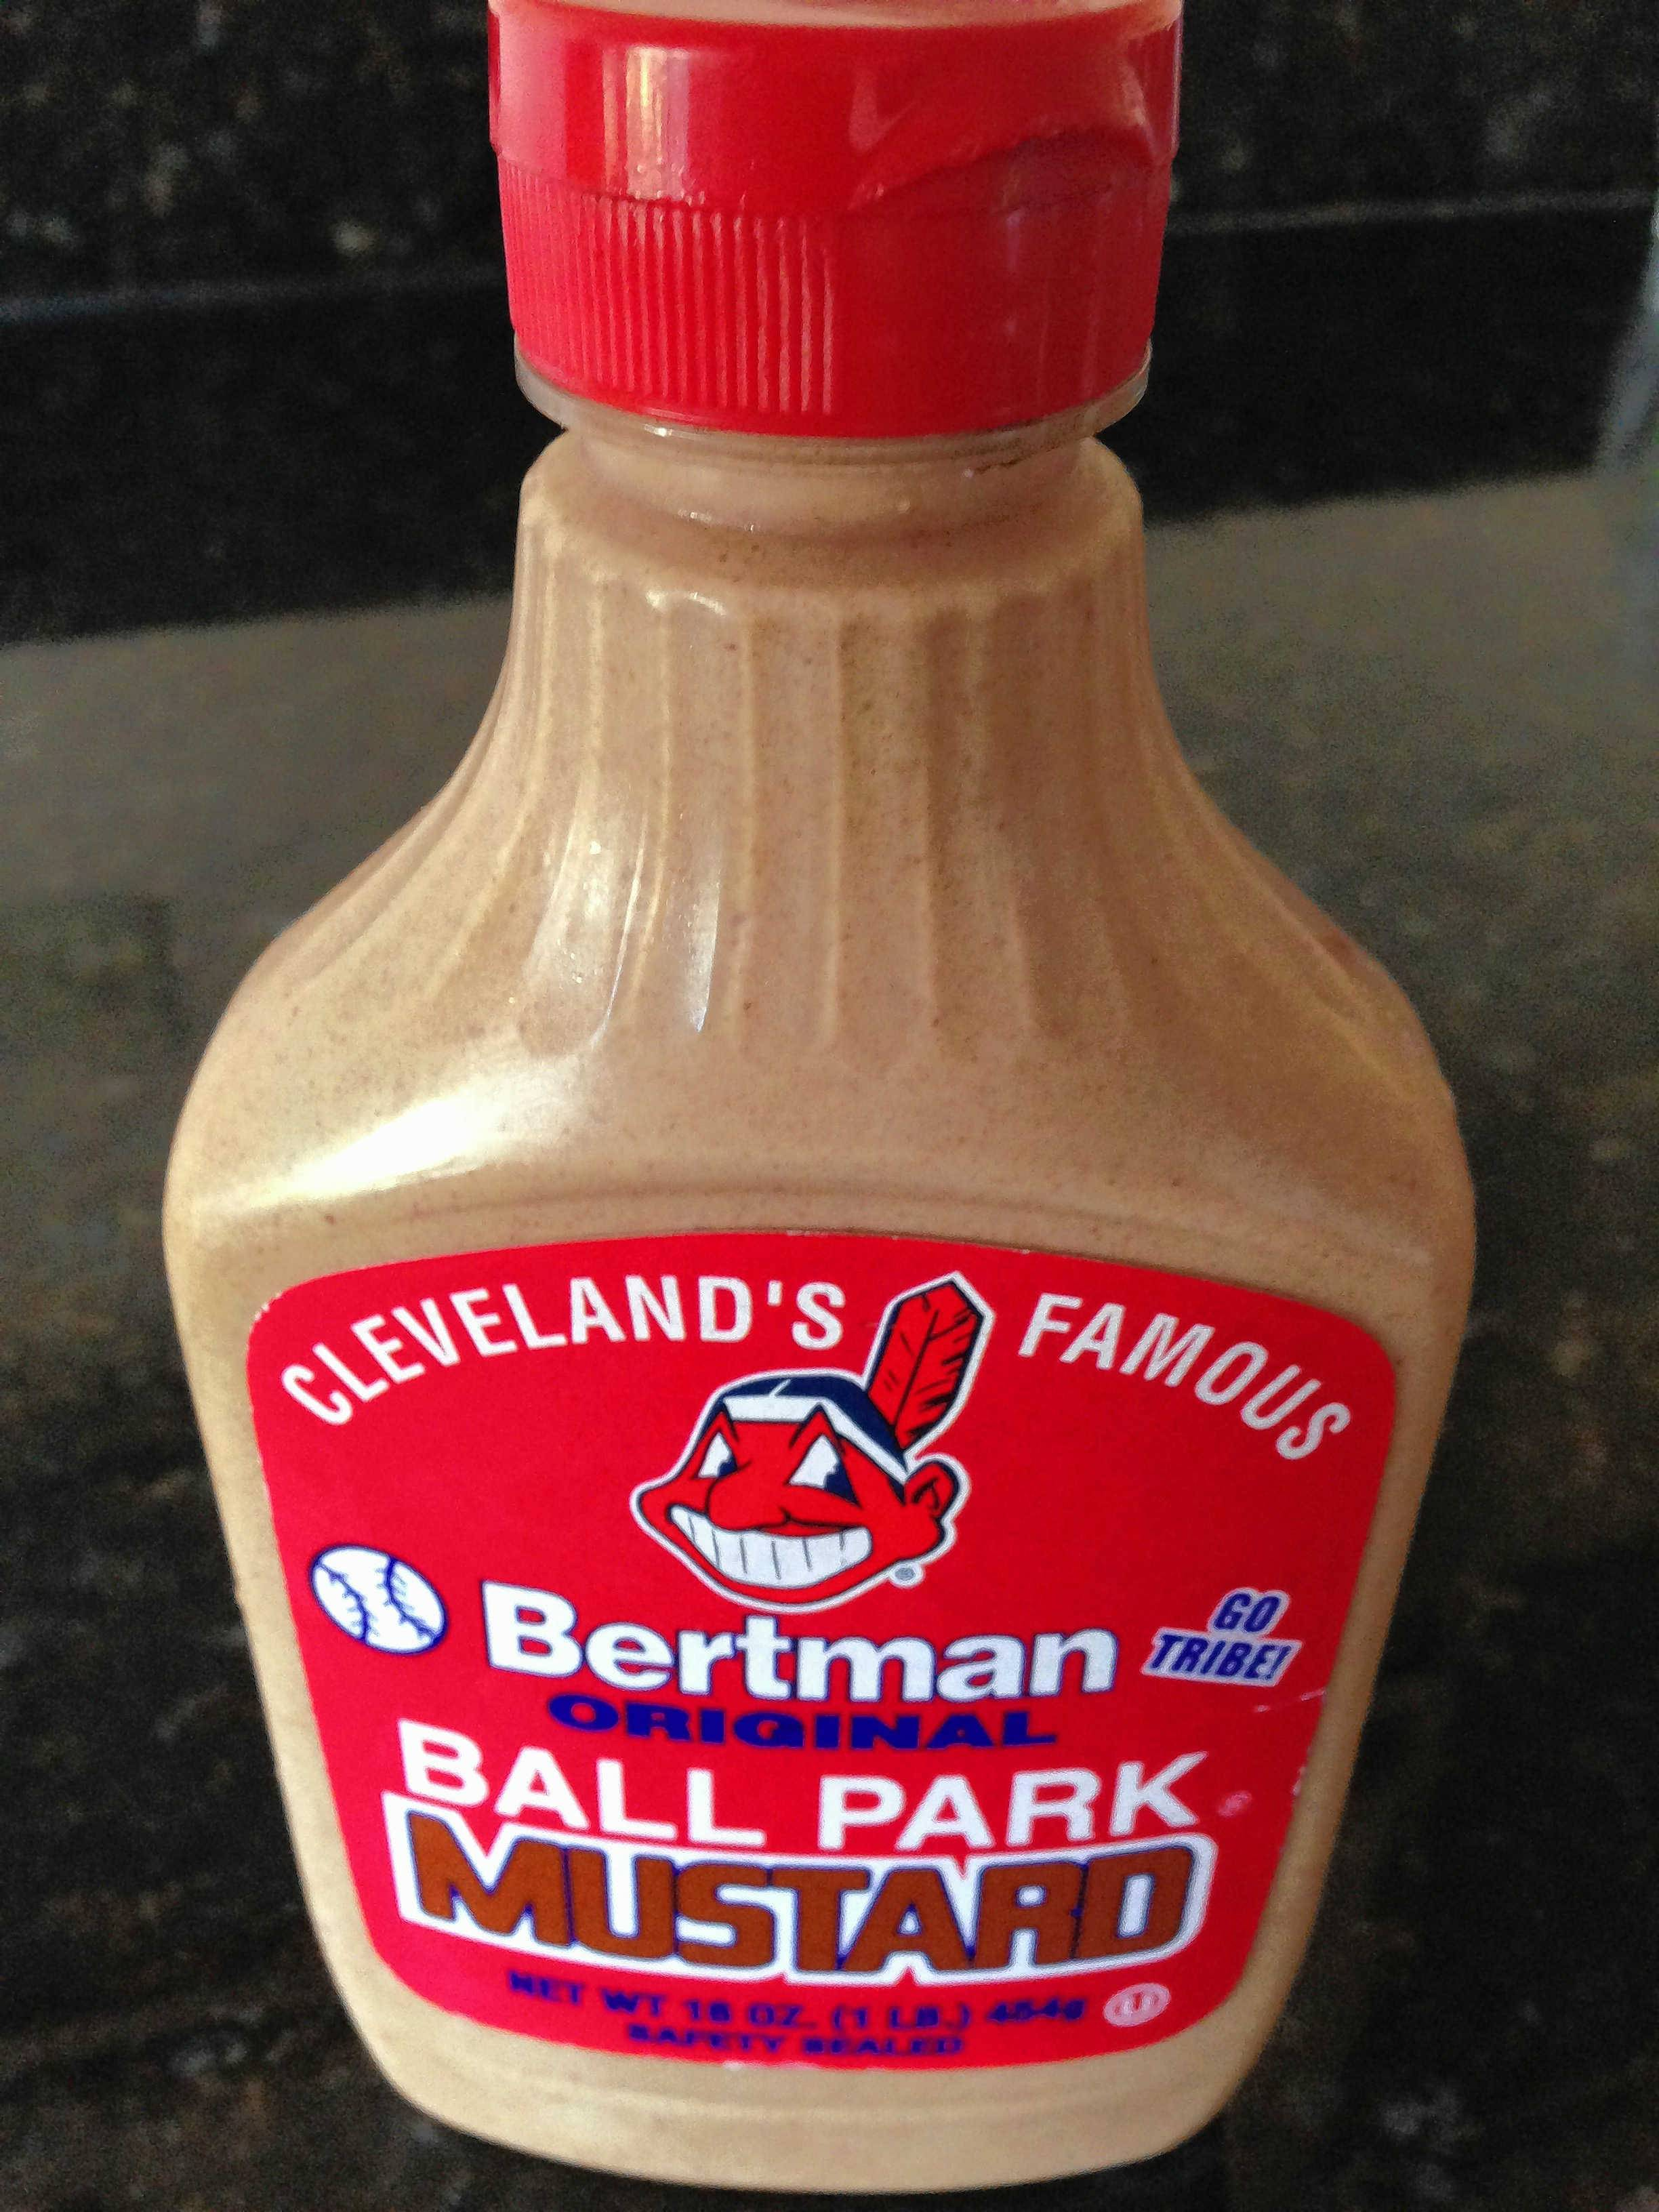 How suburban fans can enjoy Cleveland stadium mustard for World Series